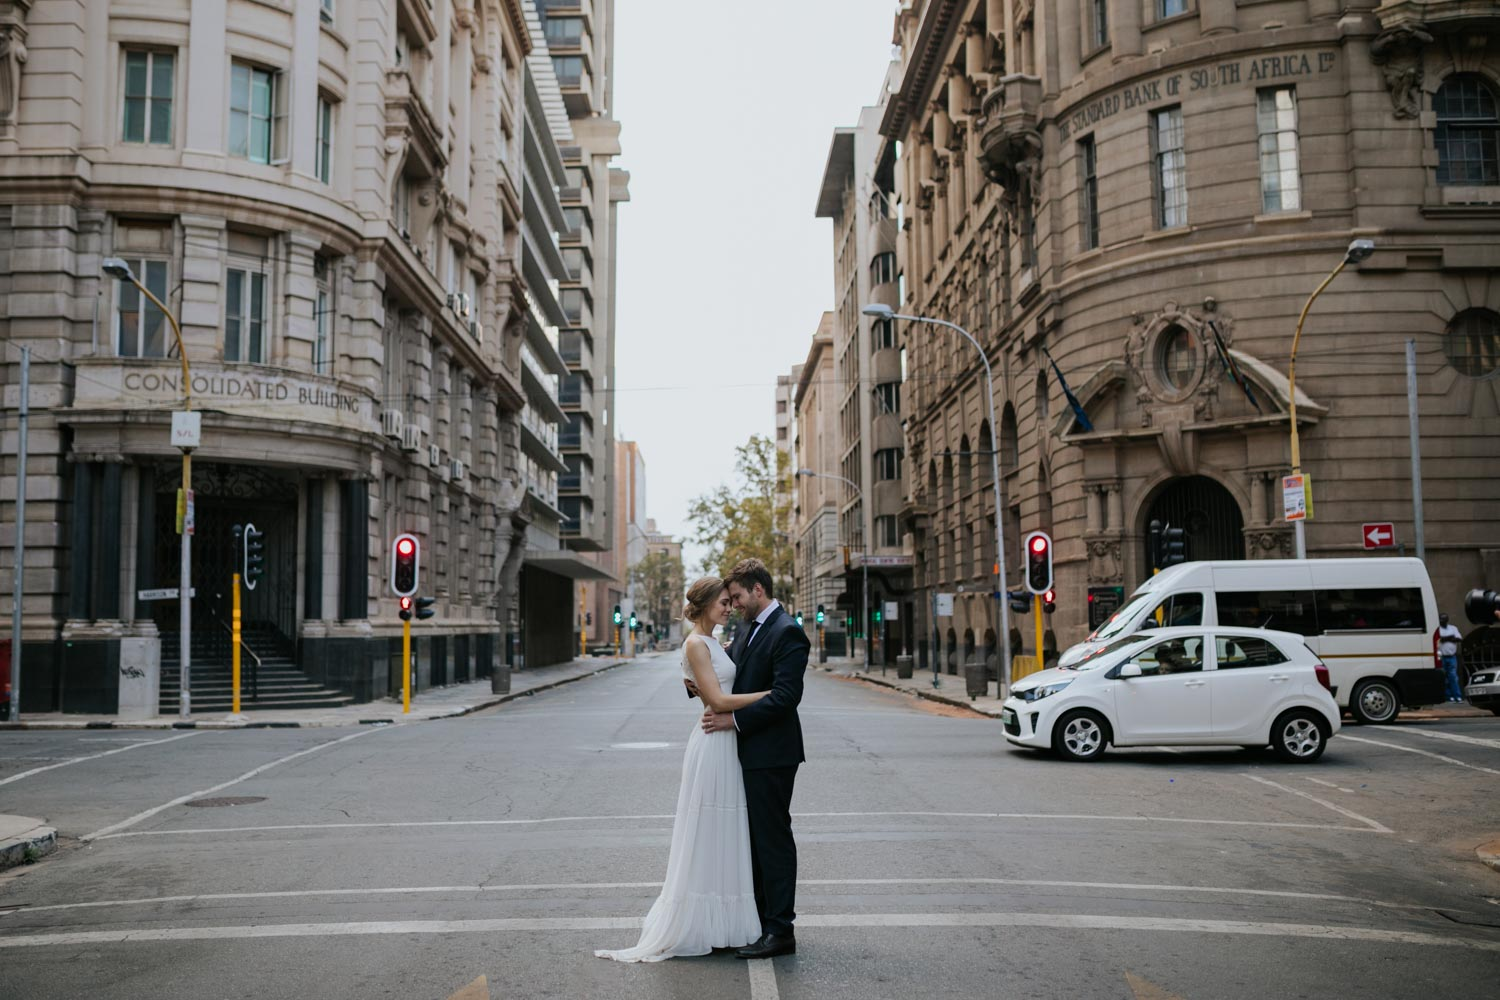 Bride And Groom Hug In Road In Vancouver City Streets